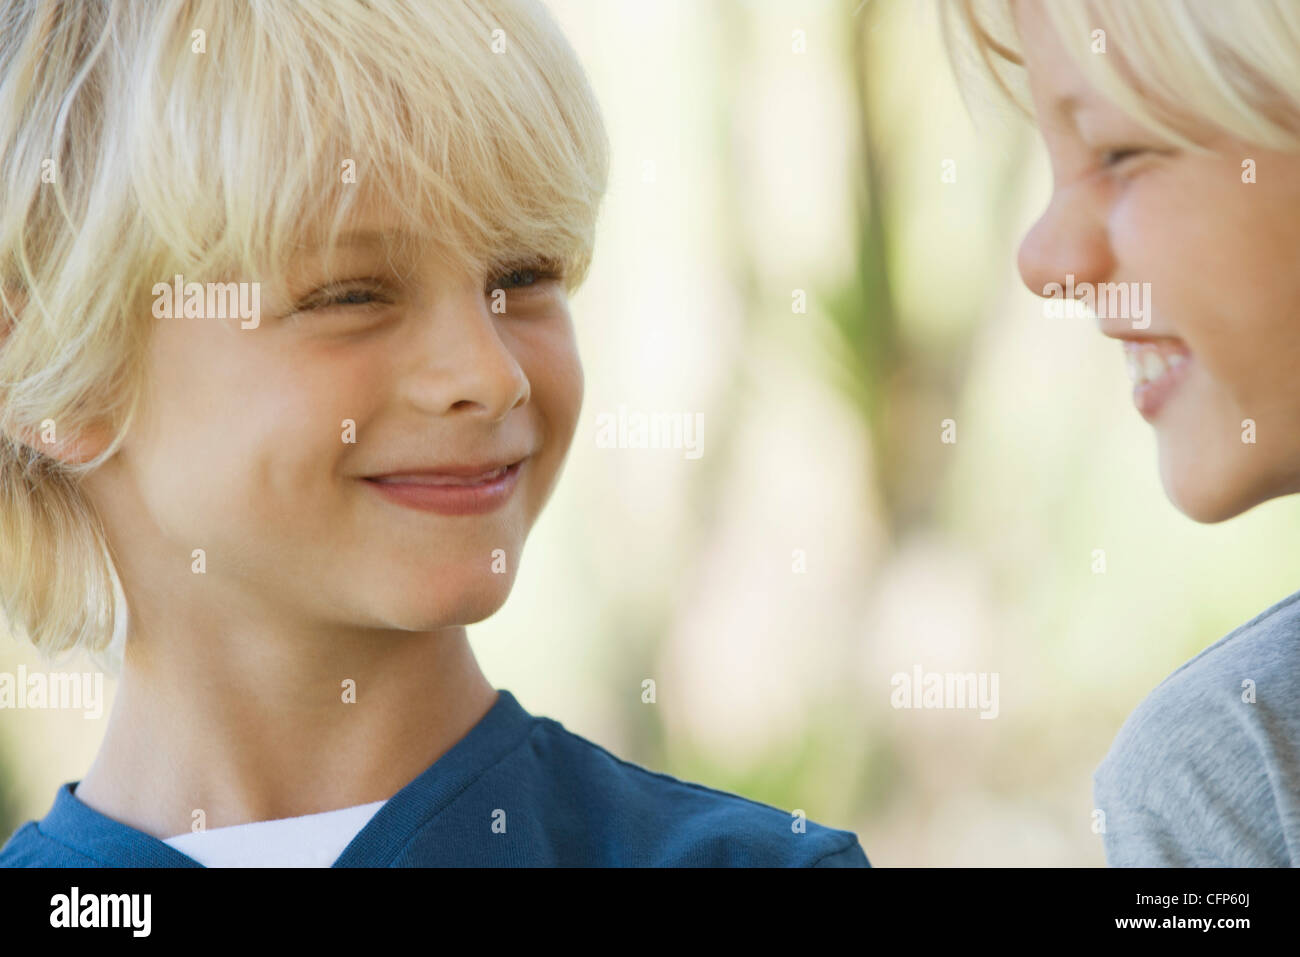 Young brothers smiling at each other - Stock Image